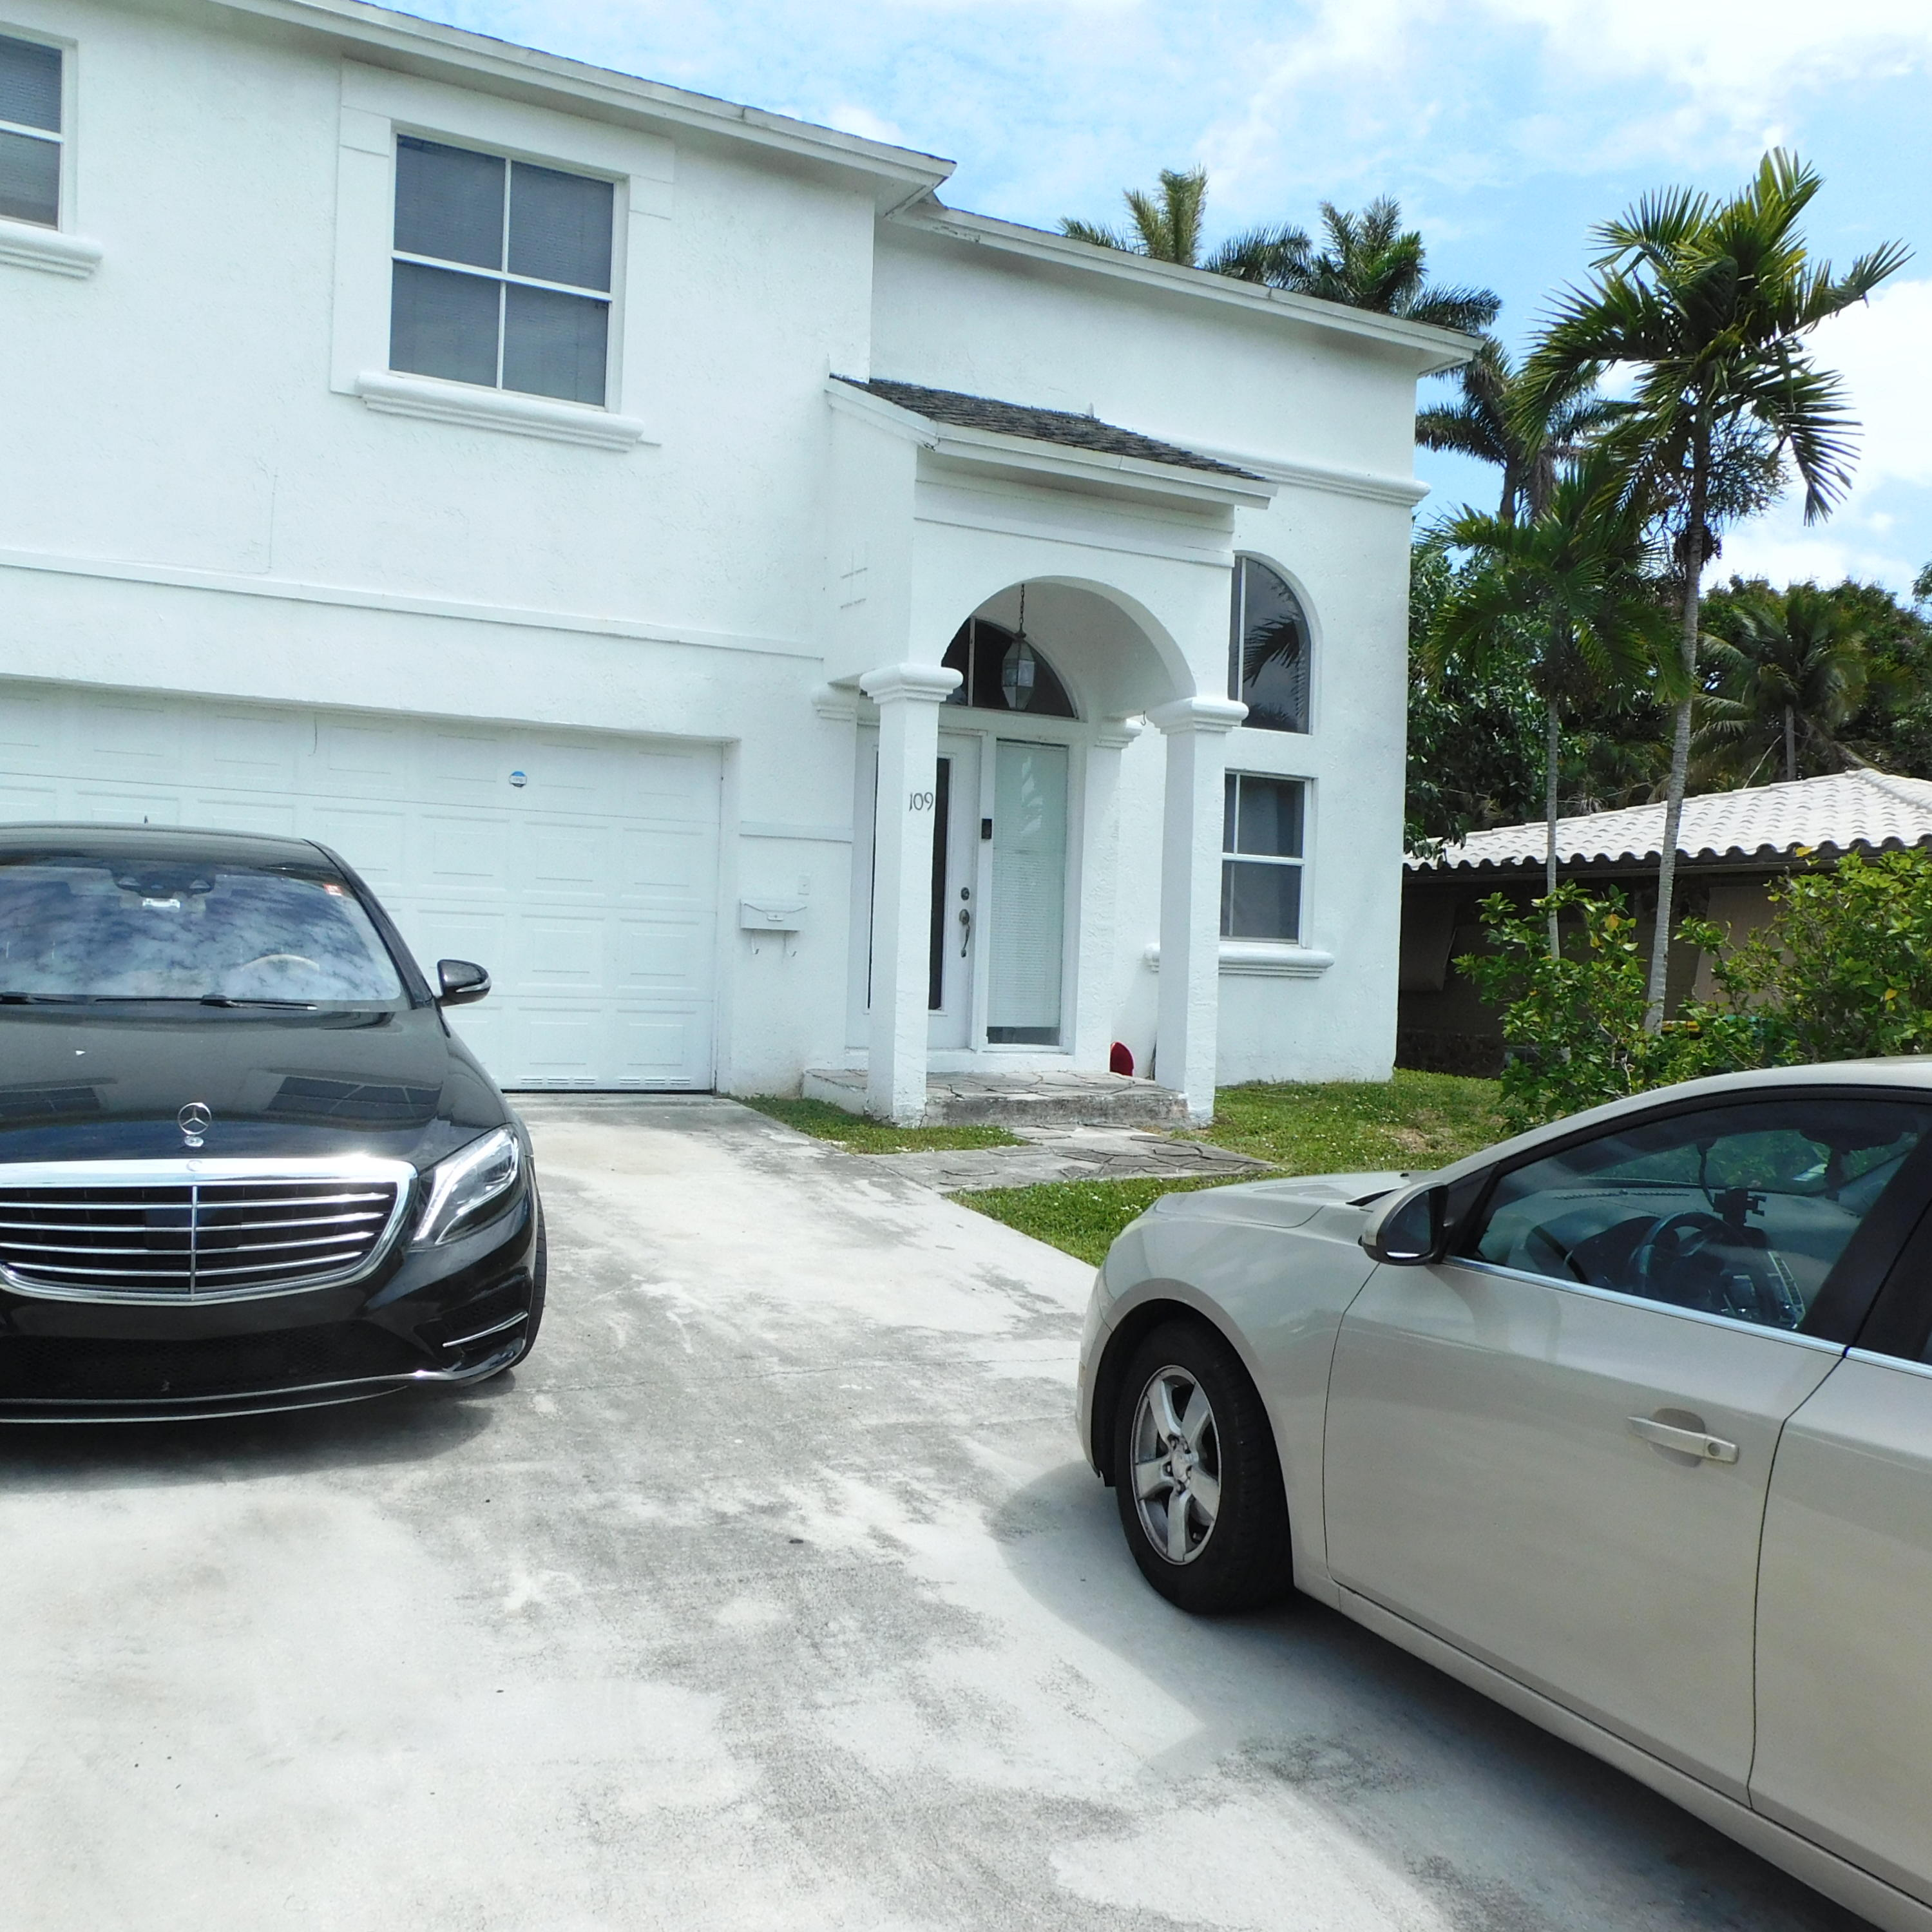 109 2nd Place,Dania Beach,Florida 33004,3 Bedrooms Bedrooms,2 BathroomsBathrooms,Single family detached,2nd,RX-10631217